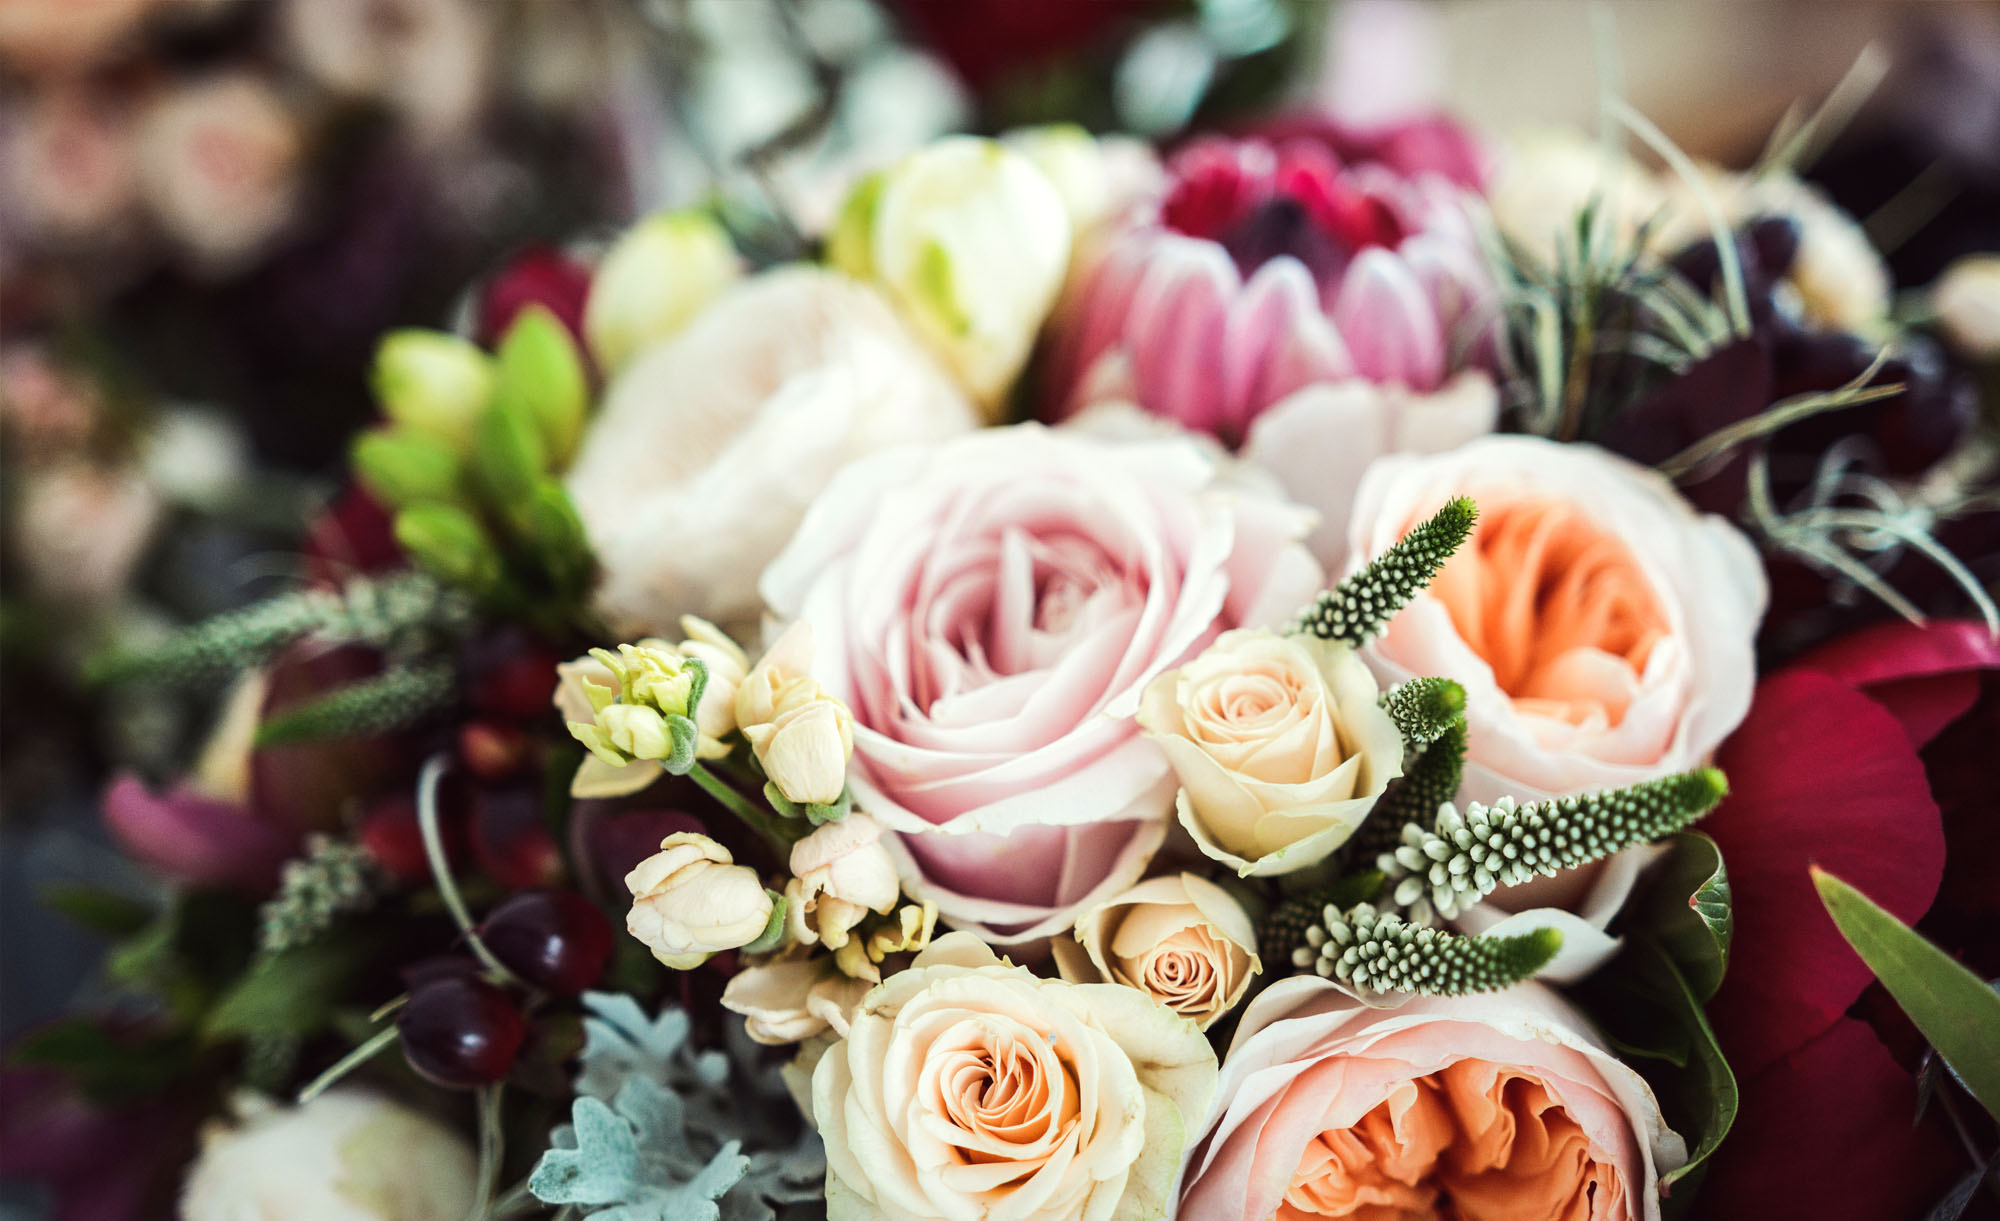 How Do Fresh Flowers Motivate Human Beings?